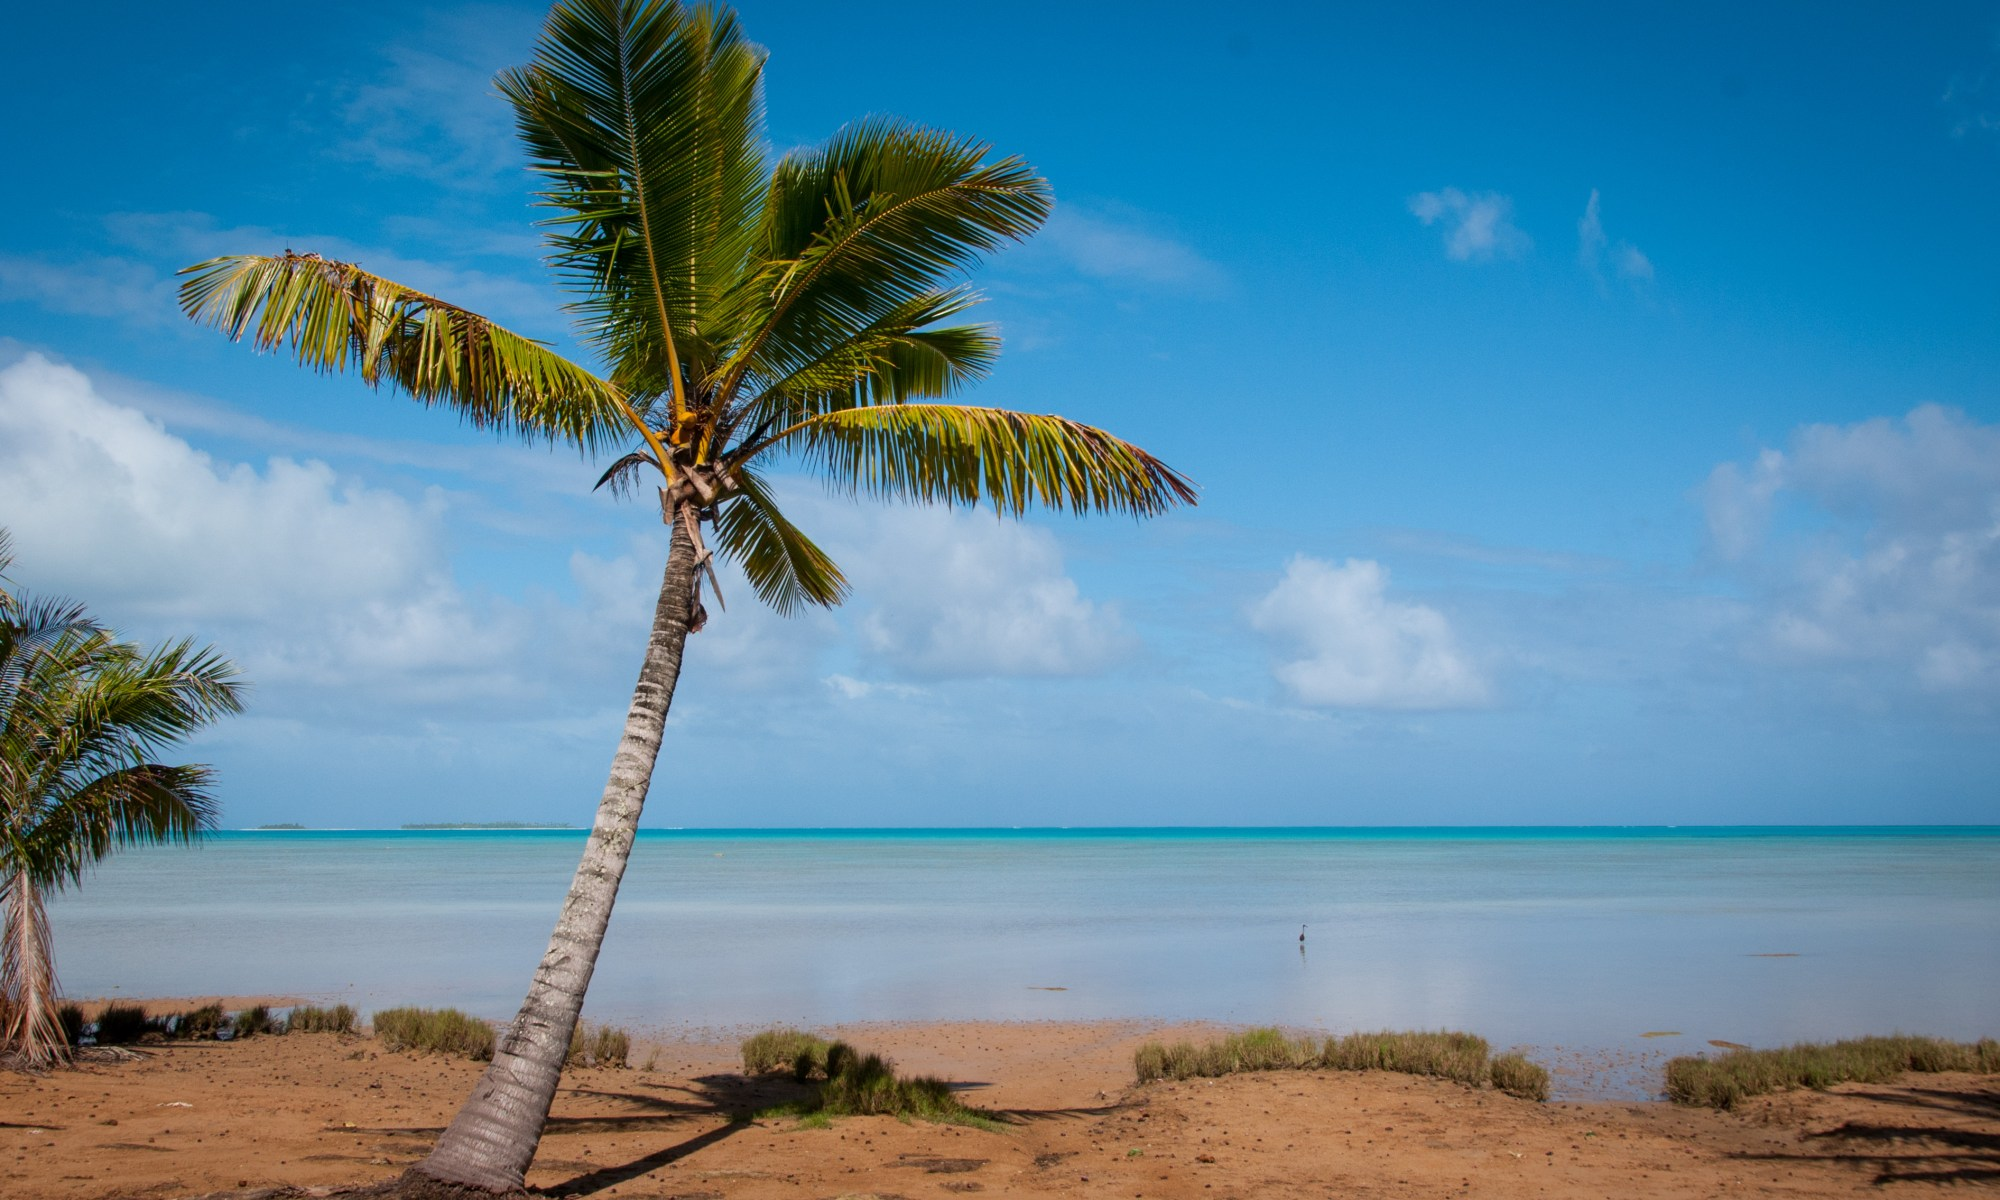 Palm Tree at Aitutaki lagoon, Cook Islands